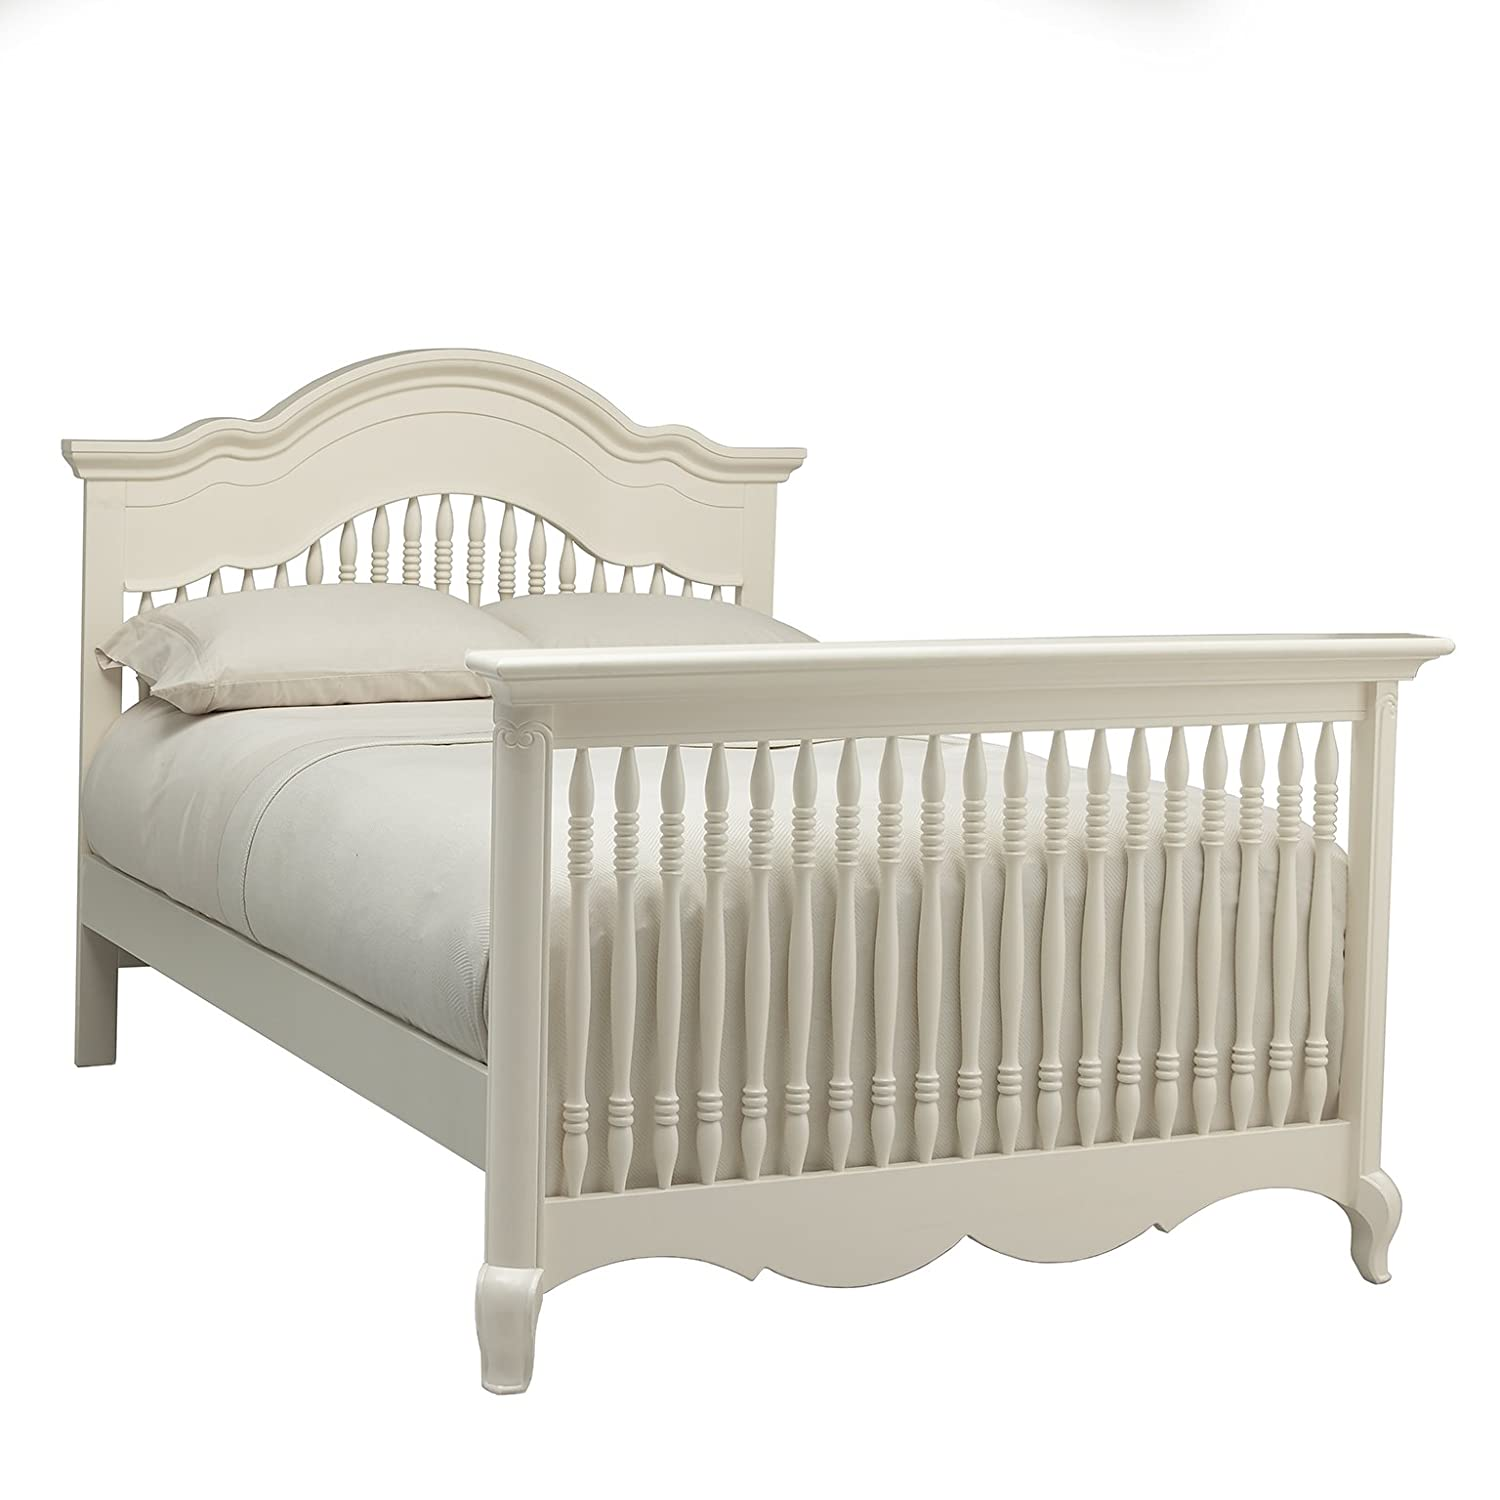 Baby bed olx - Baby Bed Olx 55